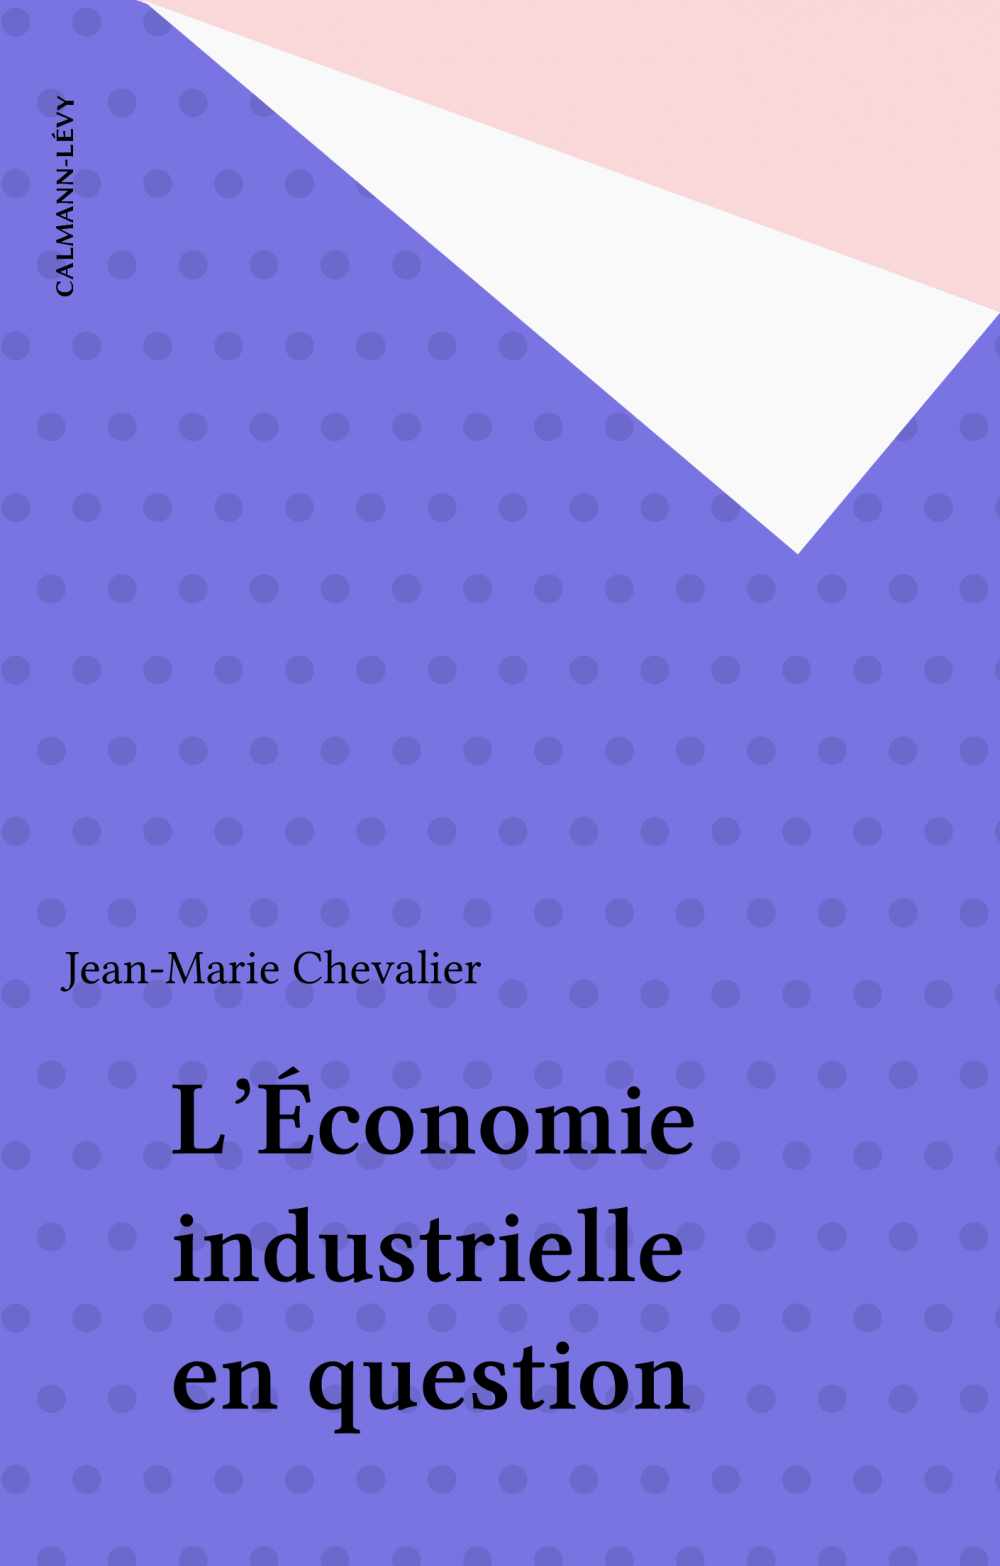 L'Économie industrielle en question